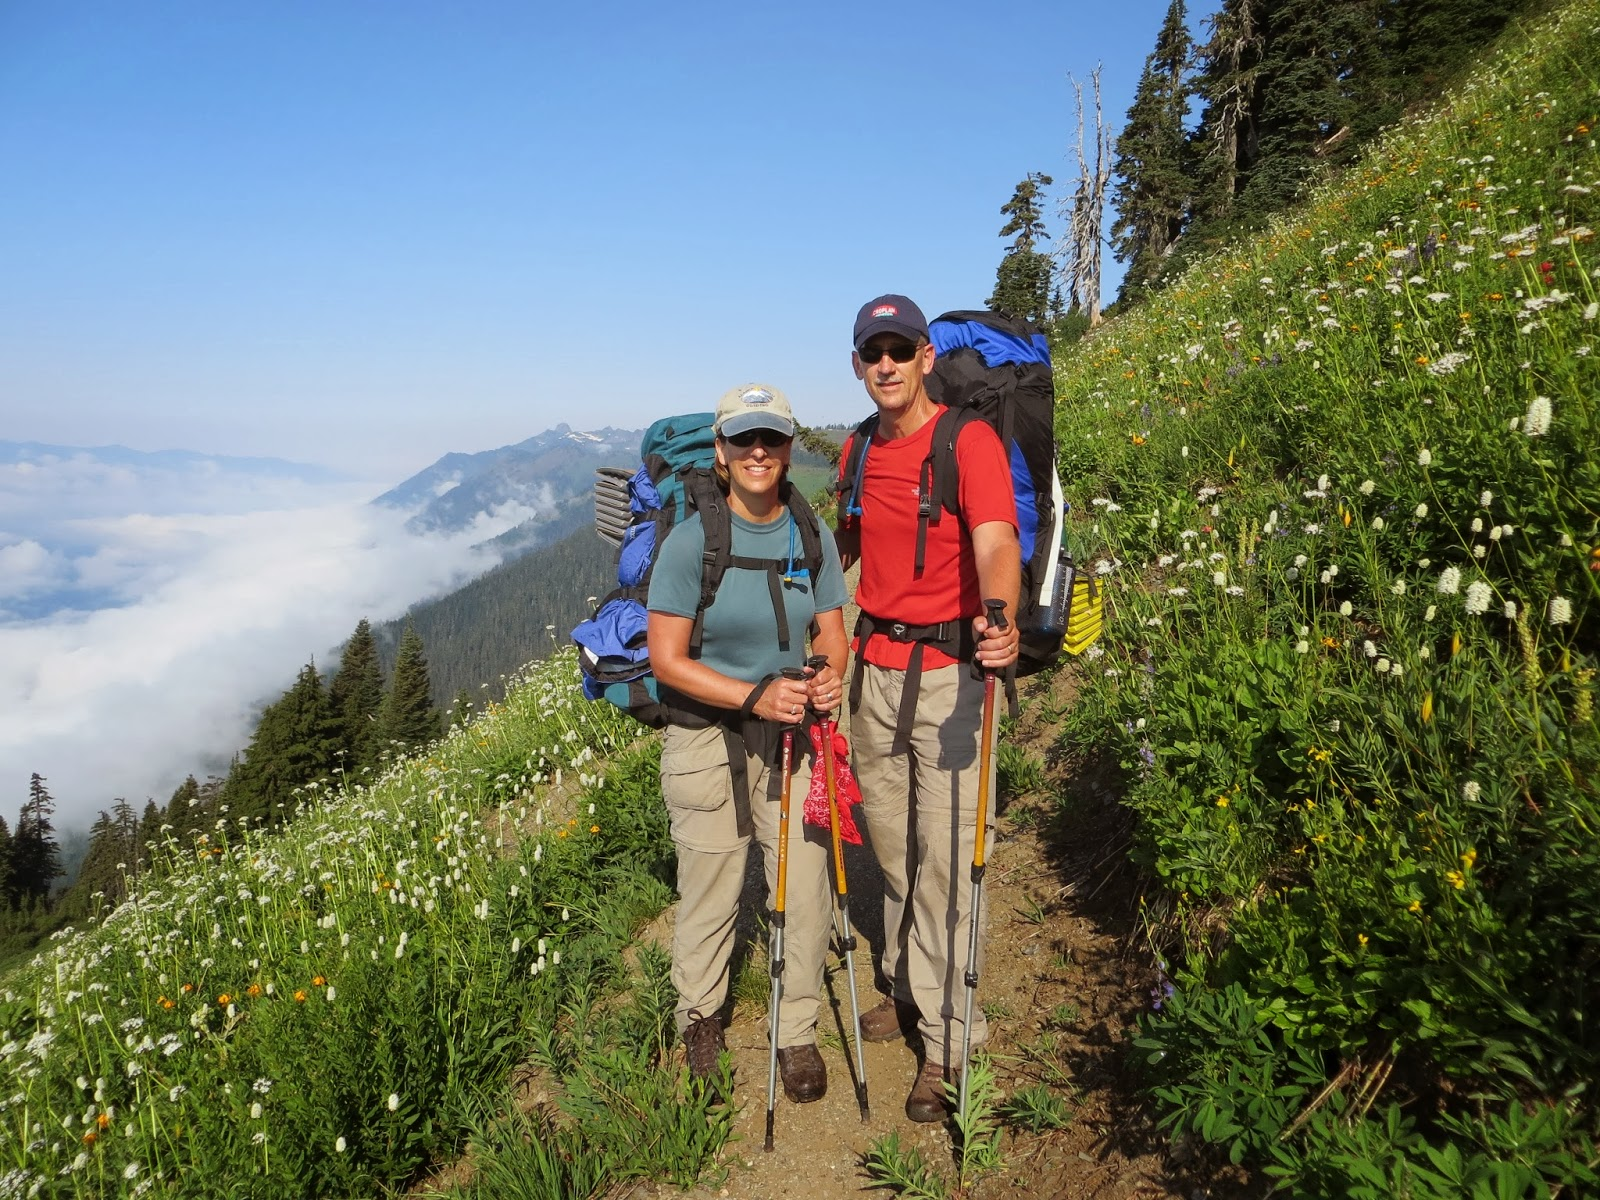 b69b6bf1f52c Backpacking trip clients enjoying sunshine and wildflowers on the North  Cascades trip.